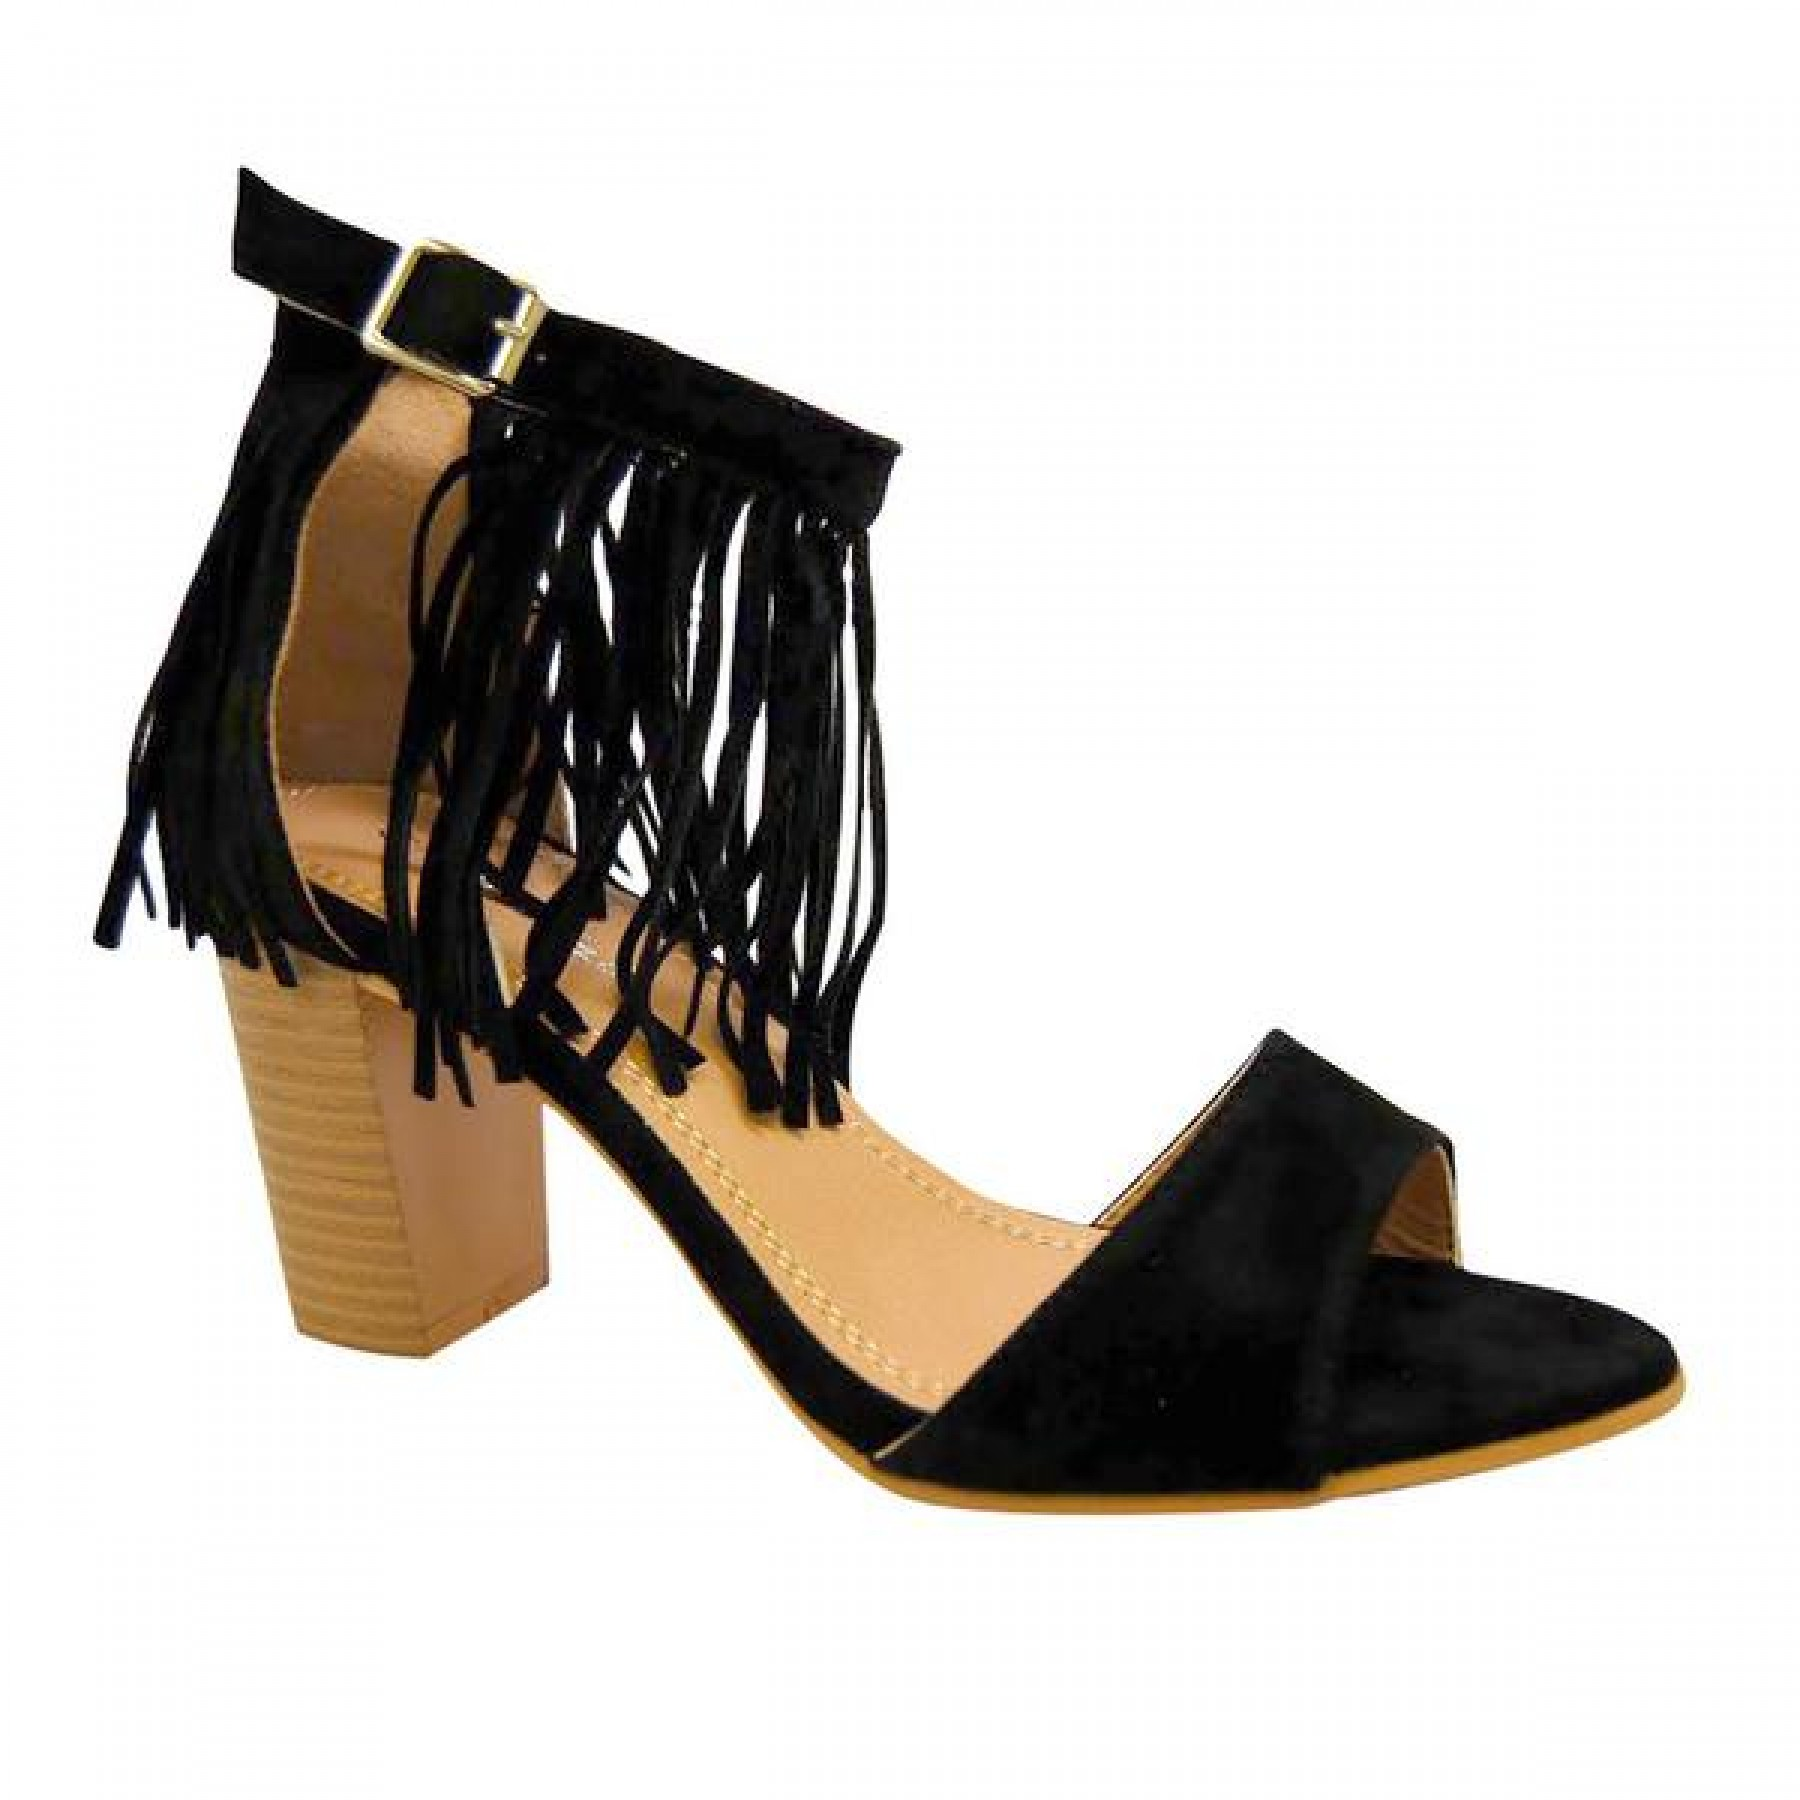 9ffb0c681b5 Women s Black Manmade Miranni Sueded Stacked Heel Sandal with ...